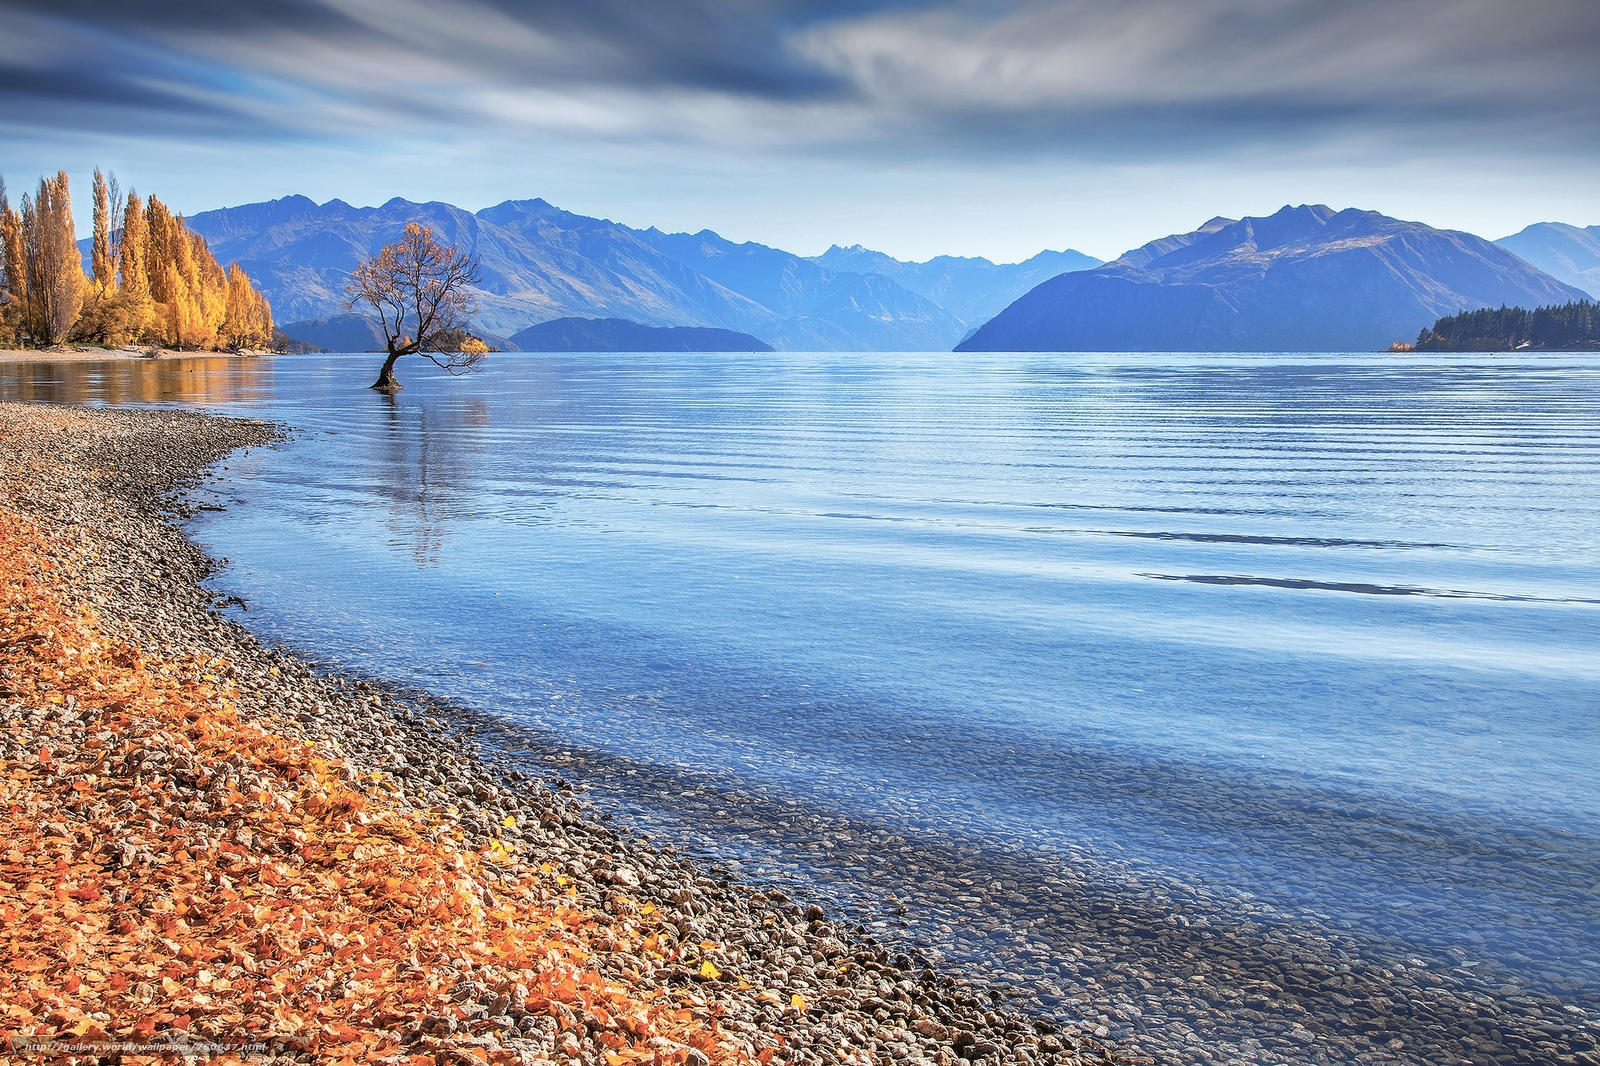 New Zealand, Wanaka, tree, lake, the mountains, autumn, landscape